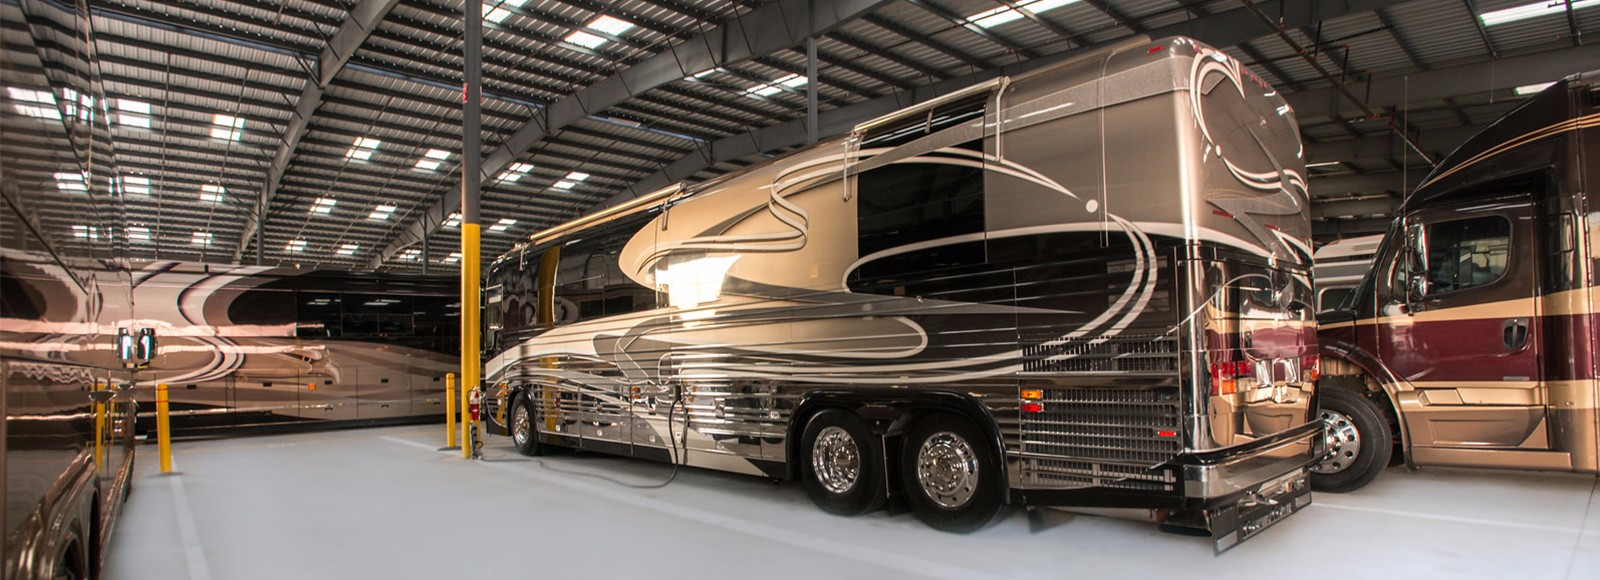 Premier Park Place Rv Storage In Rockwall Tx